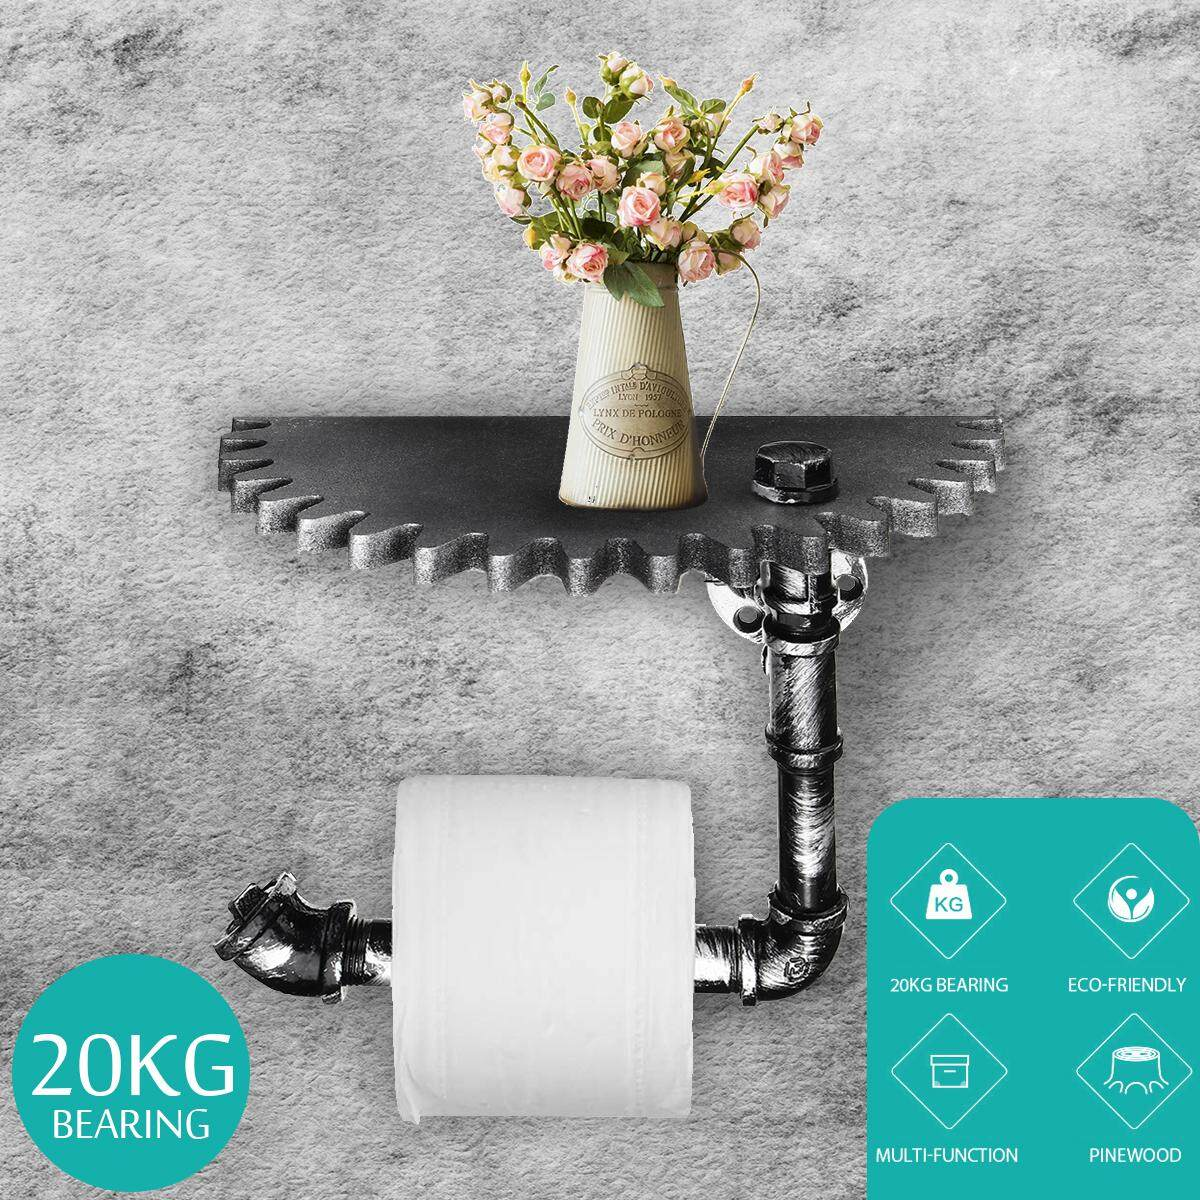 Industrial Urban Iron Pipe Toilet Paper Holder Roller With Wood Shelf Wall Gear